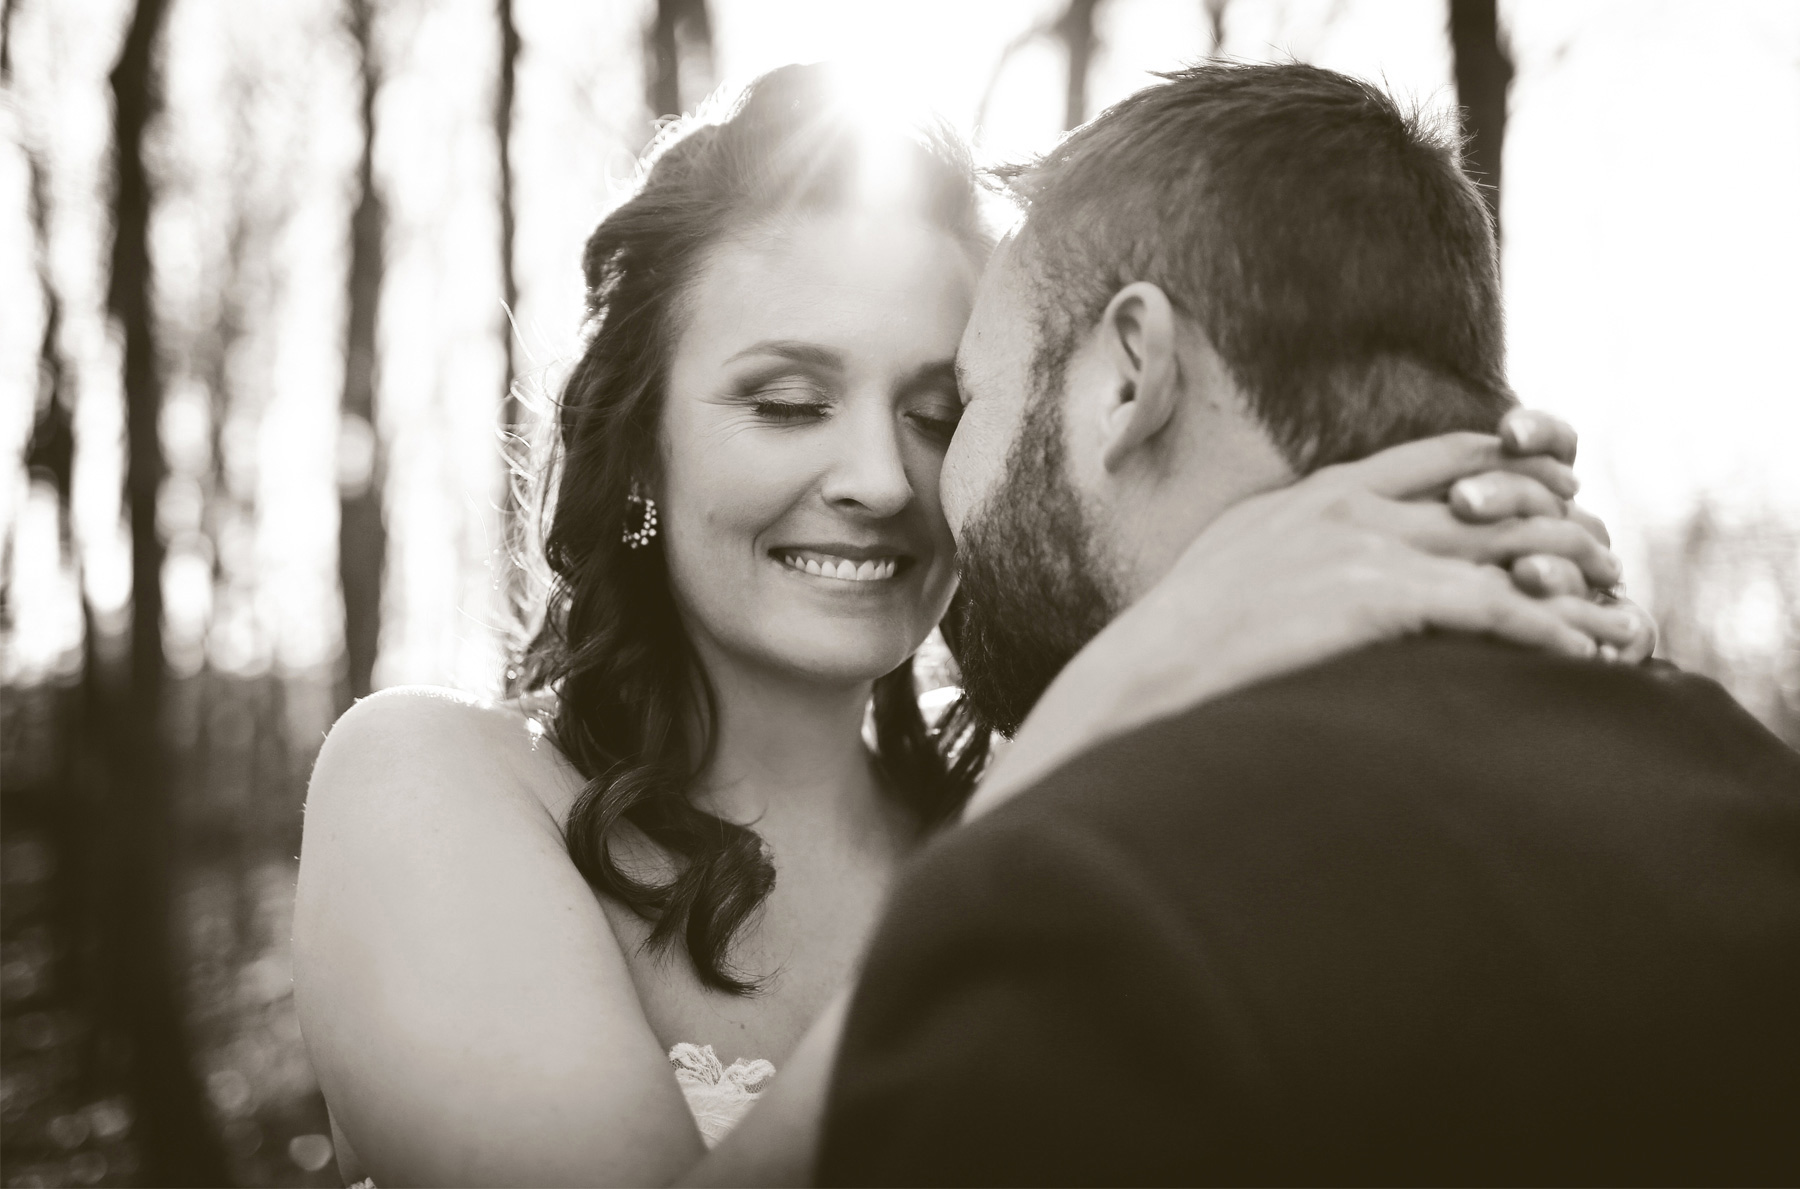 07-Minneapolis-Minnesota-Wedding-Photography-by-Vick-Photography-Prior-Lake-Horse-and-Hunt-Club-Rustic-Woods-Sarah-and-Steve.jpg